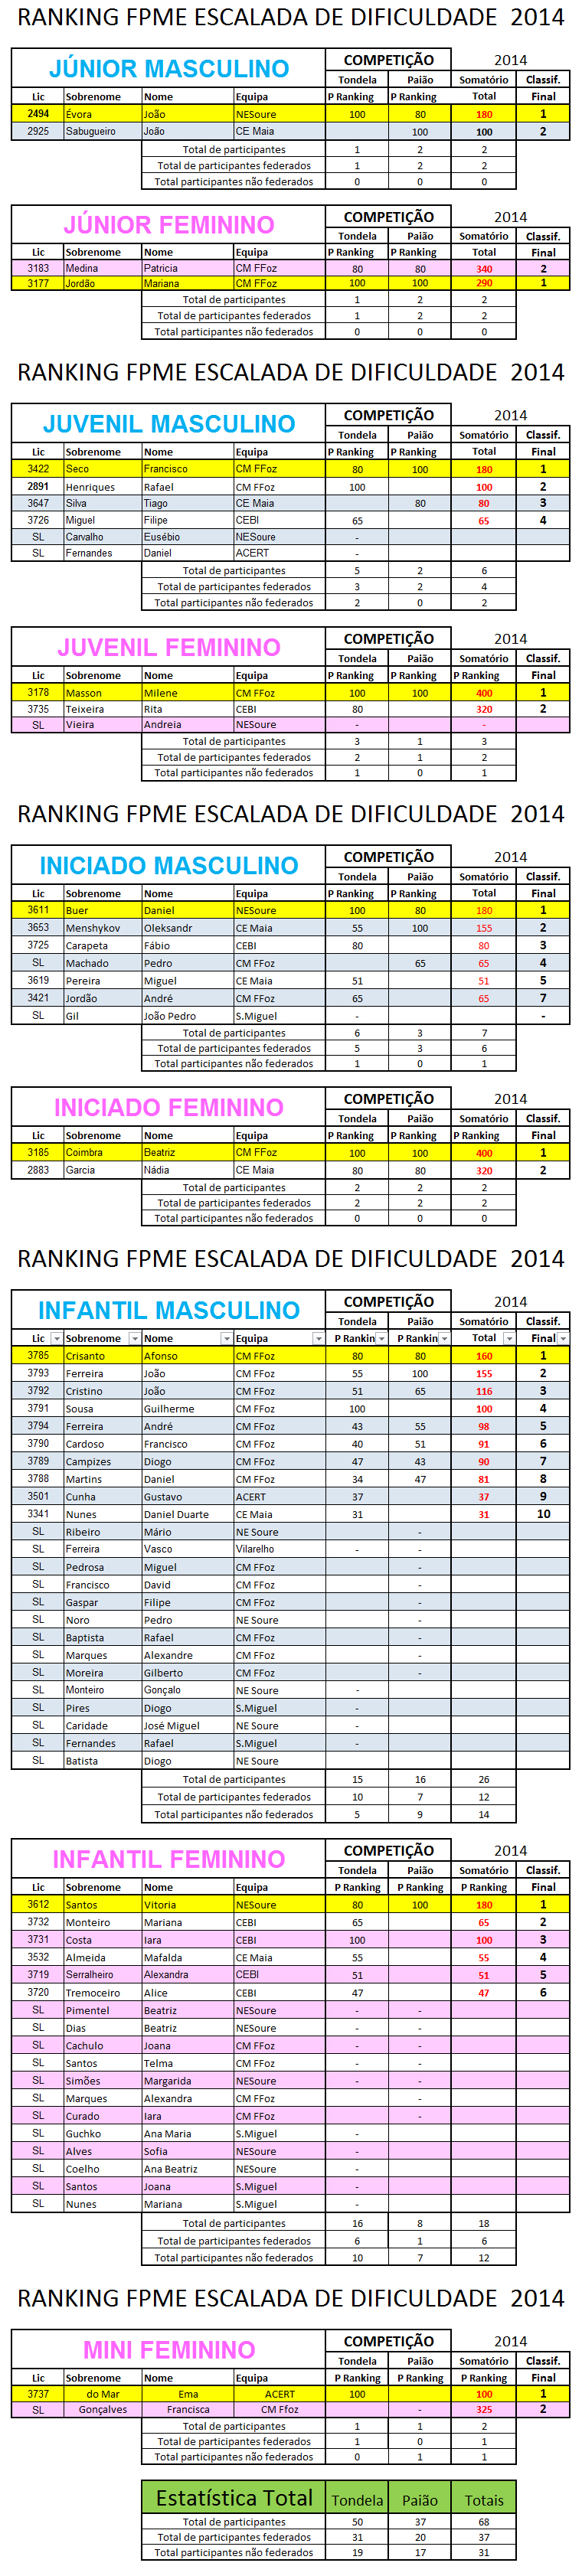 RankingFPMEDificuldade 2014